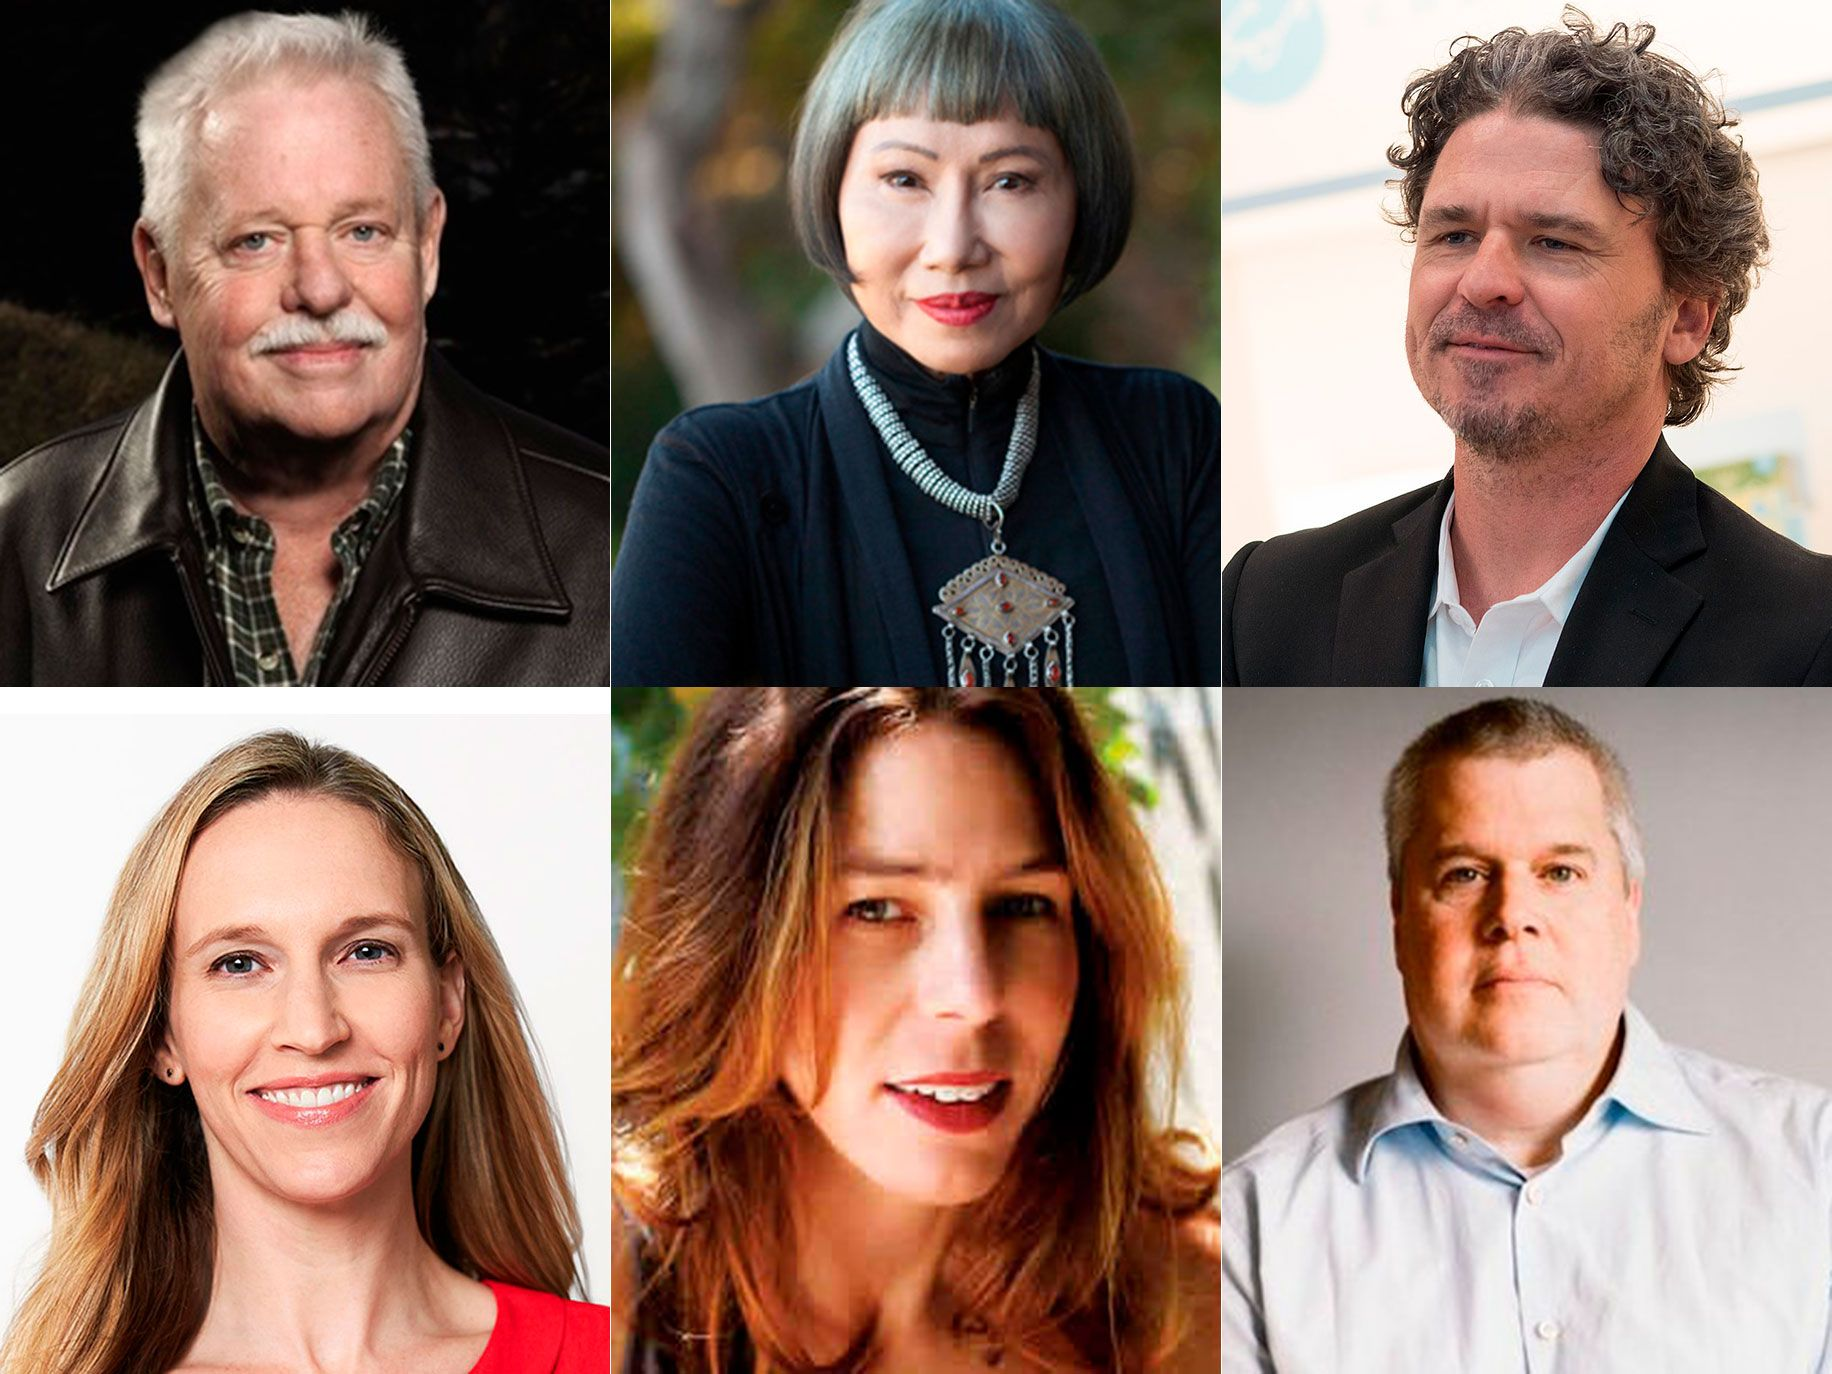 Clockwise from top left: Armistead Maupin, Amy Tan, Dave Eggers, Daniel Handler, Rachel Kushner and Jessica Powell.